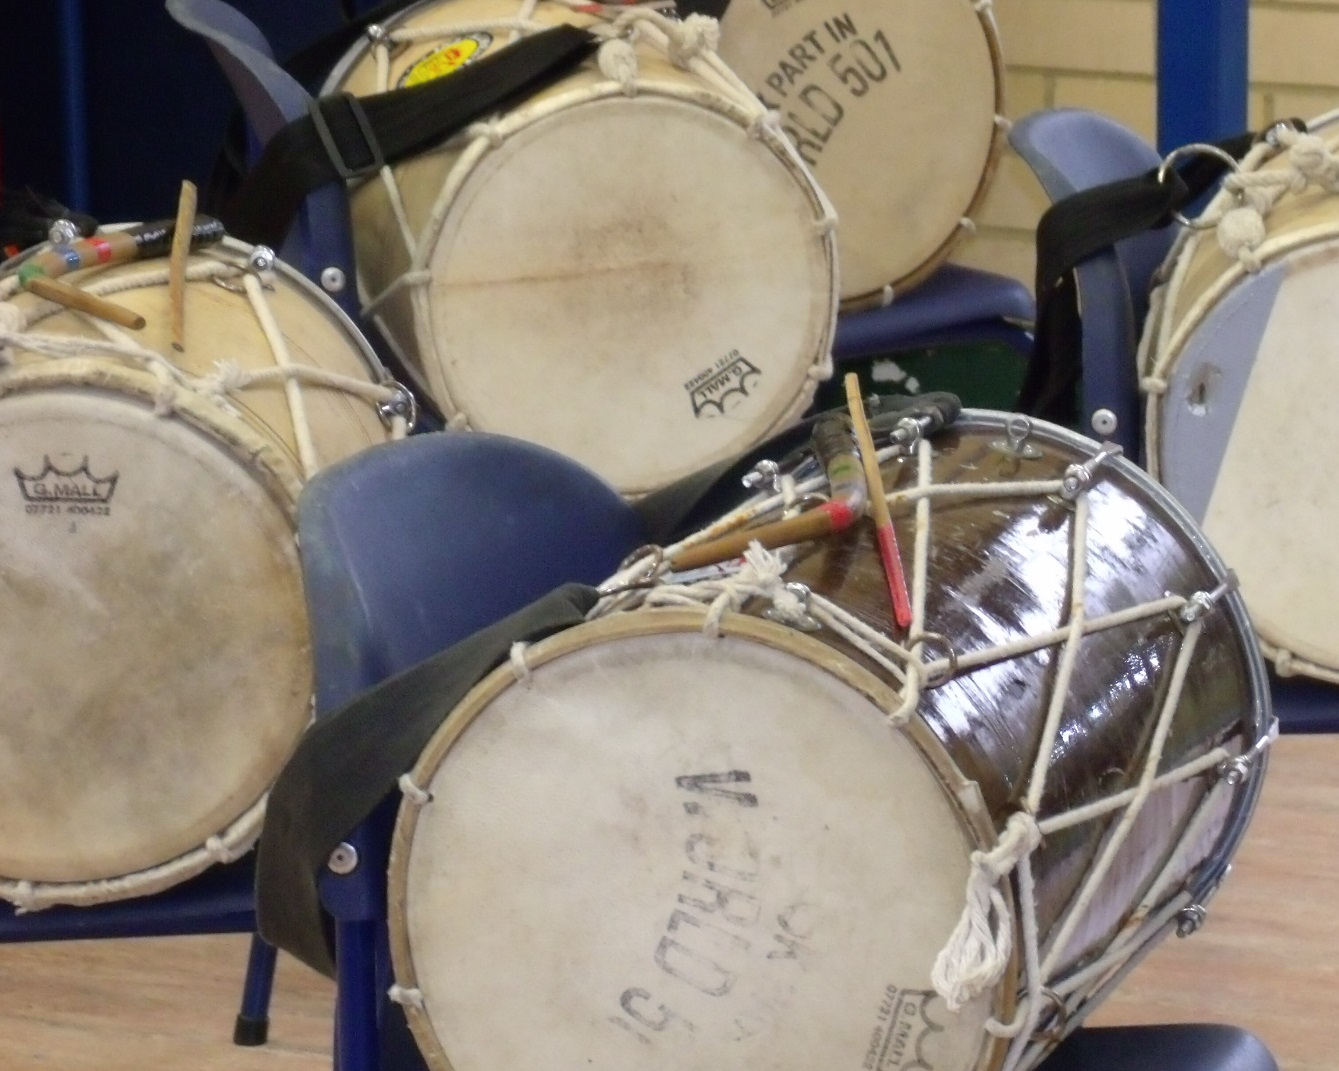 Selection of Indian drums on school chairs